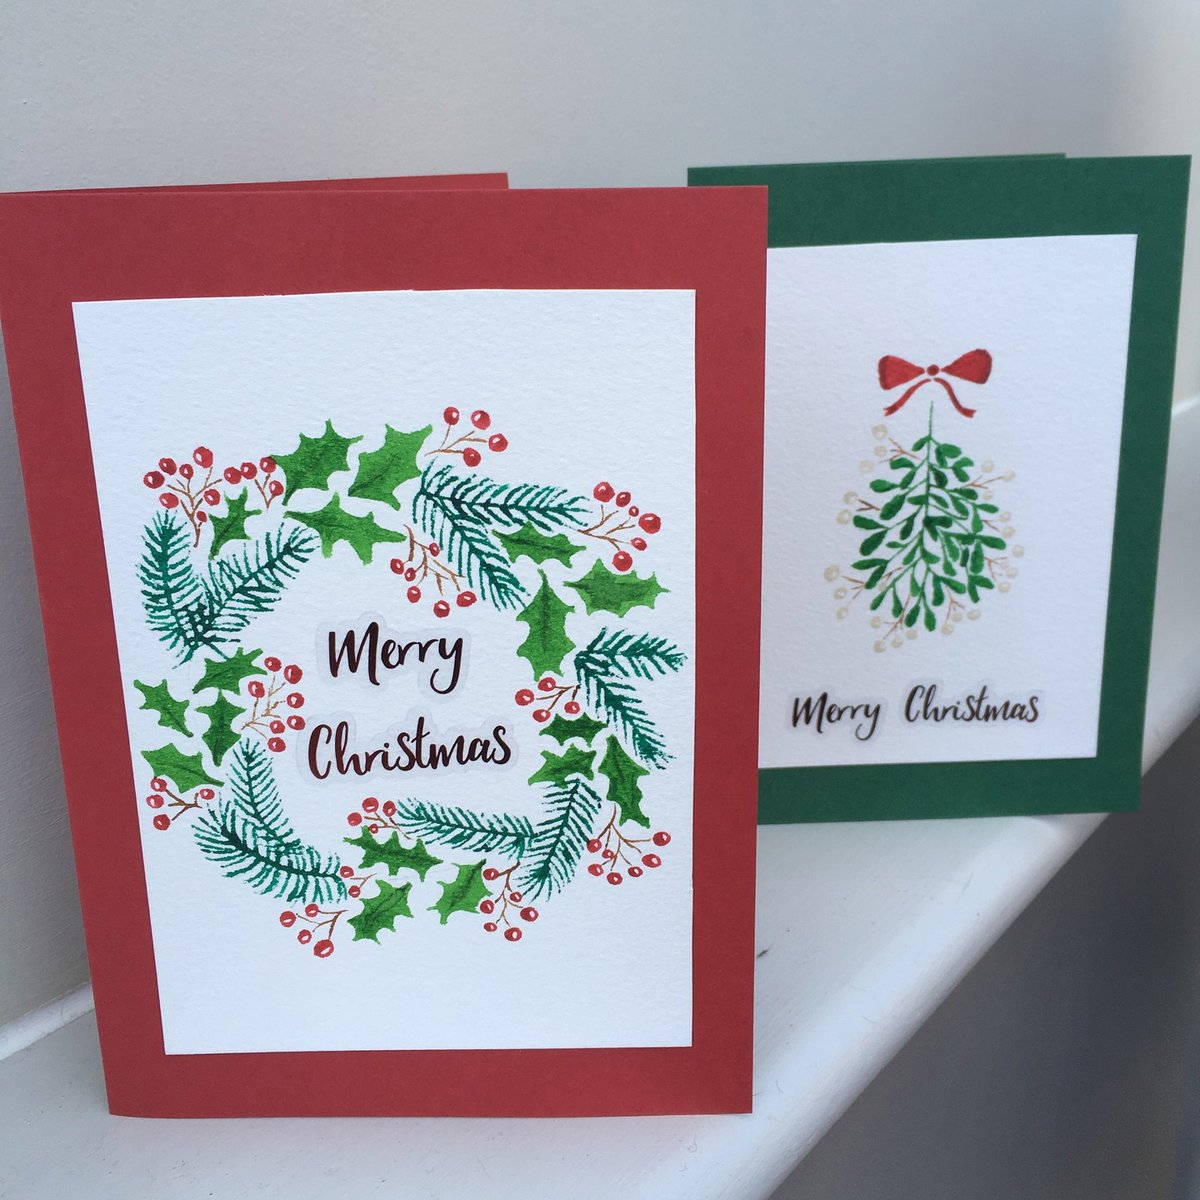 These watercolour wreath and mistletoe Christmas cards were painted by Naomi and uploaded into our Christmas Craft Competition. How pretty!   Enter our competition for a chance to win £100: https://t.co/vm4Y3J8xXy  #CraftTogether #Competition #Hobbycraft https://t.co/1TSAM5cu0j